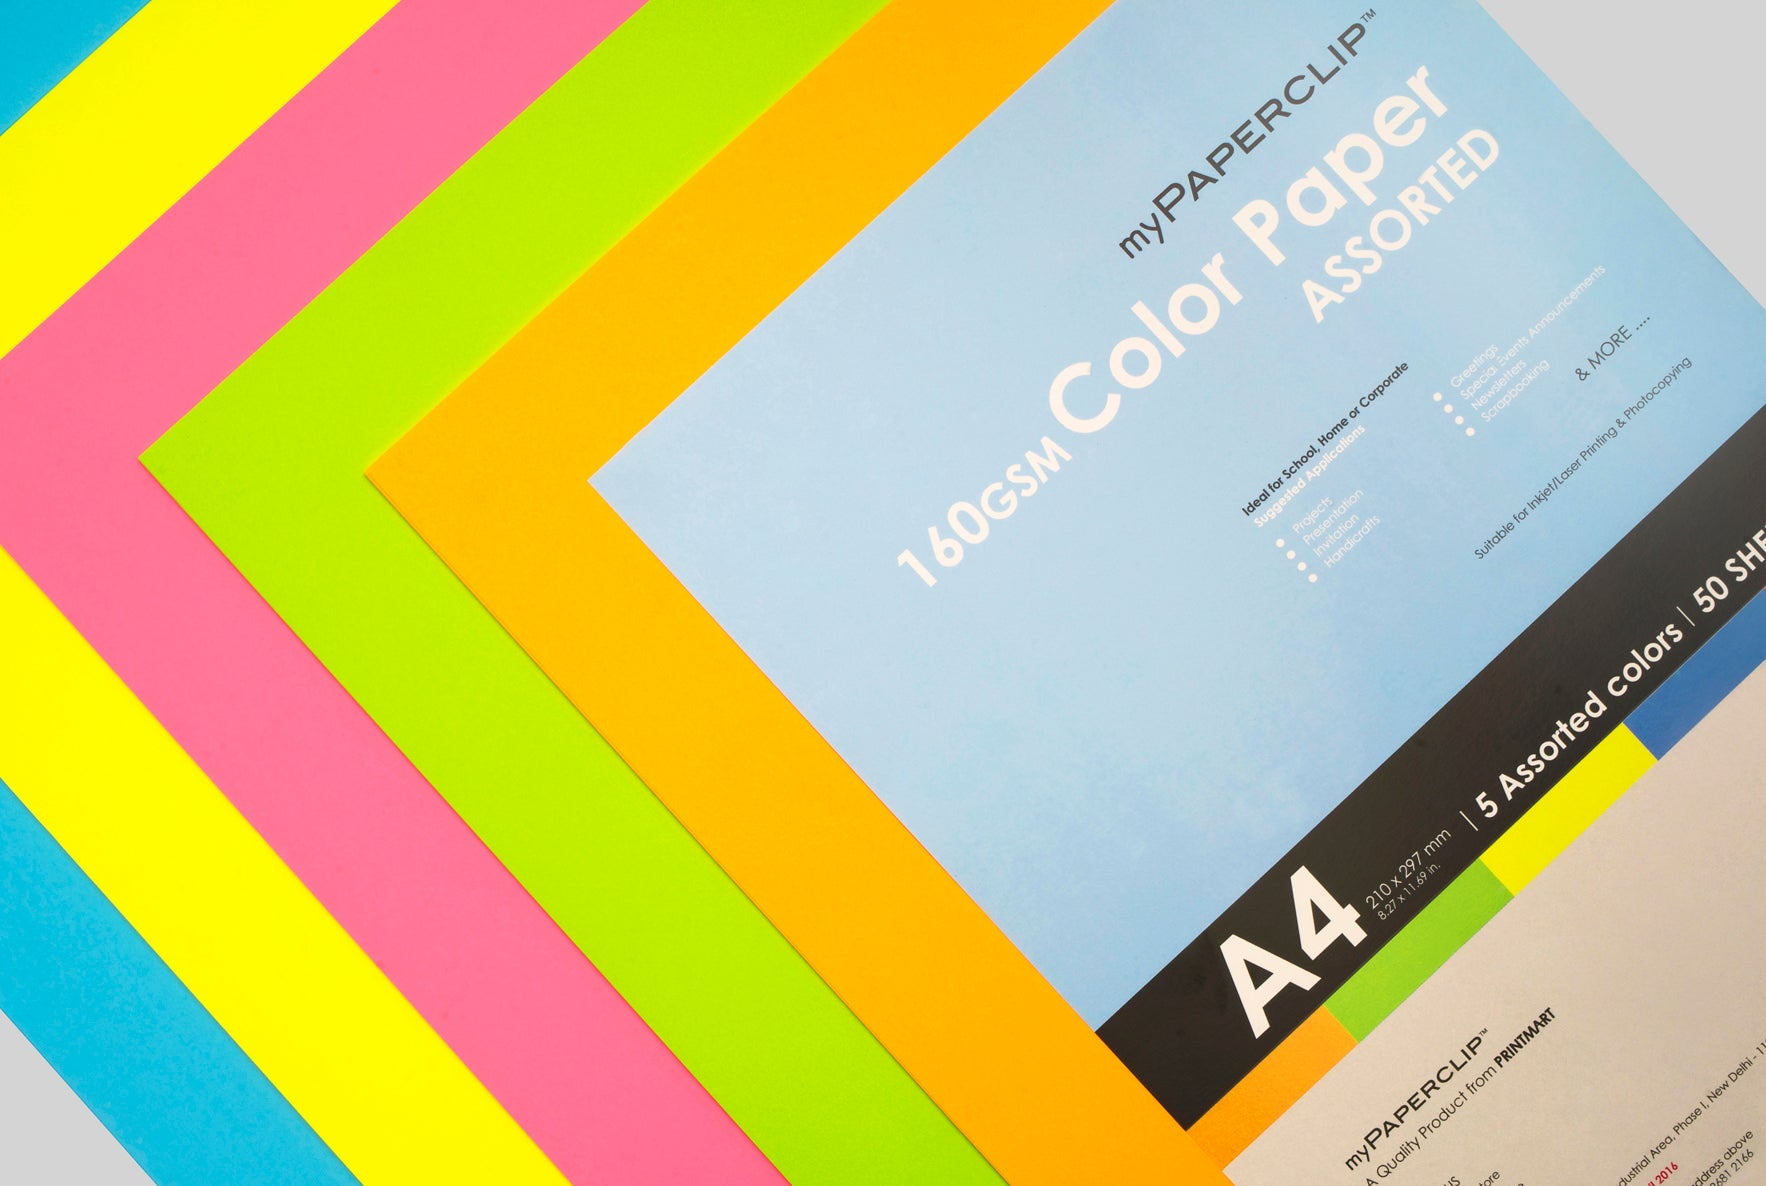 COLOUR & UNCOATED PAPER